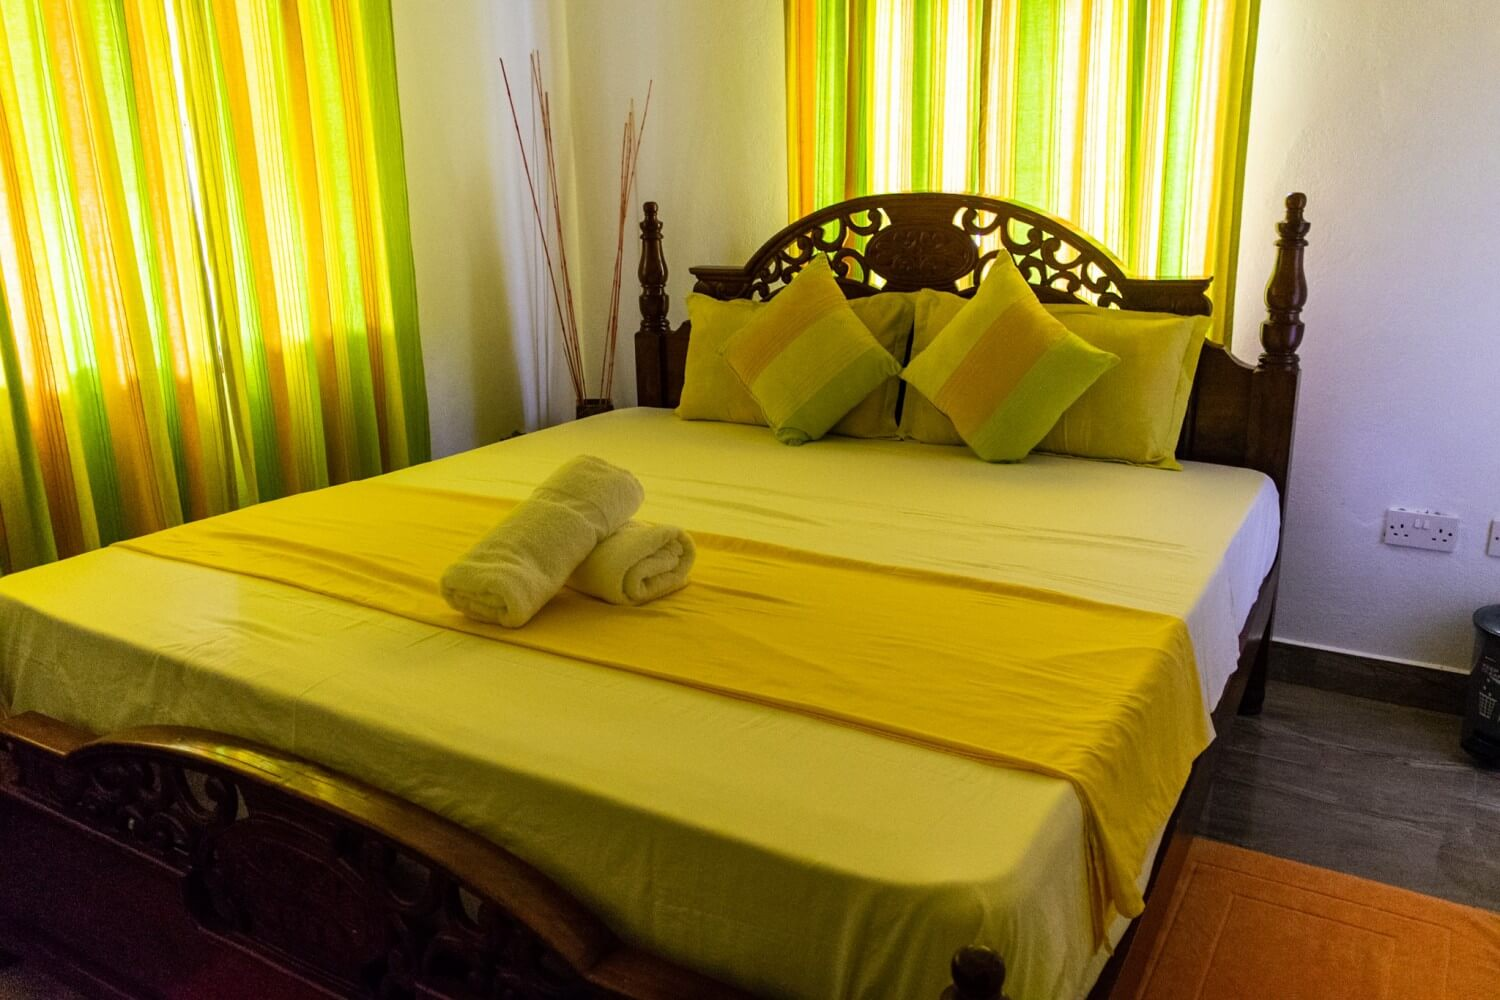 A bed in a Self Catering Apartment - budget guide to Seychelles